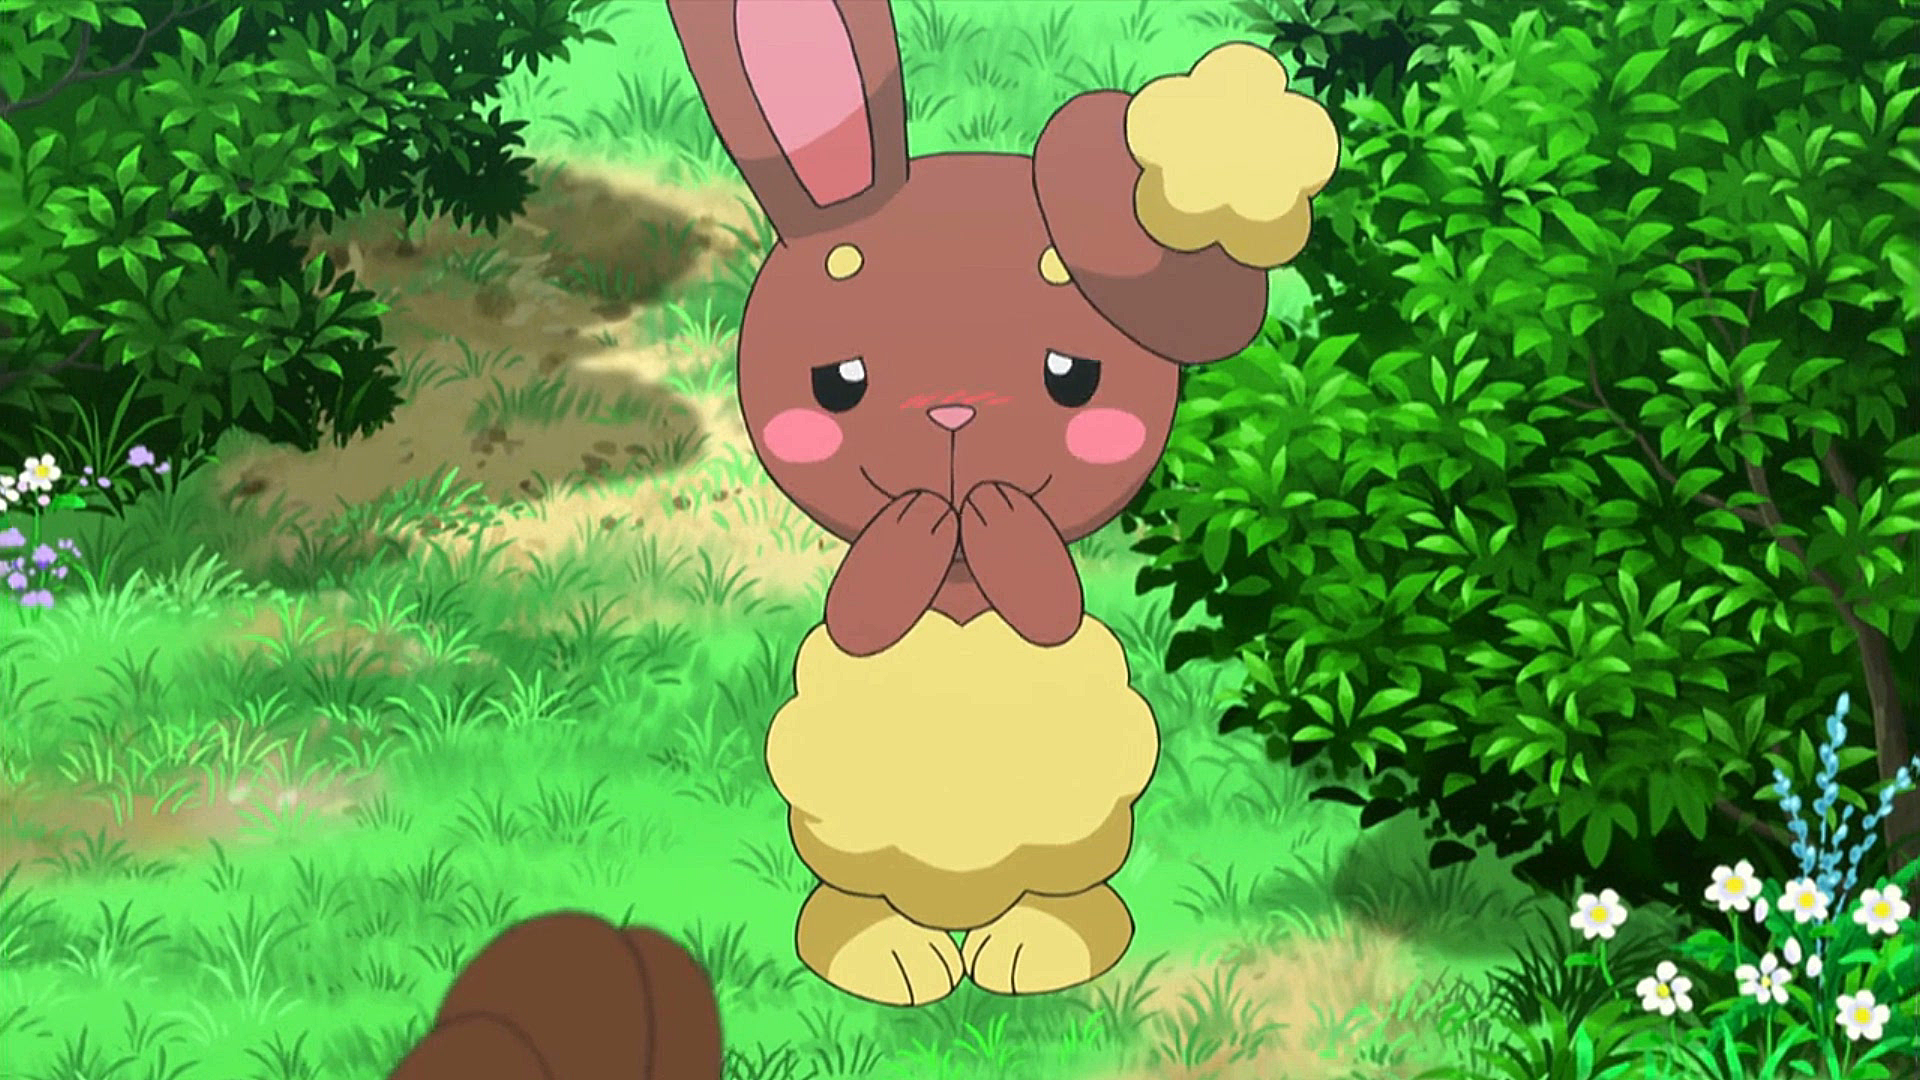 Lilia was accompanied by Buneary, who has a crush on Clemont's Bunnelby.